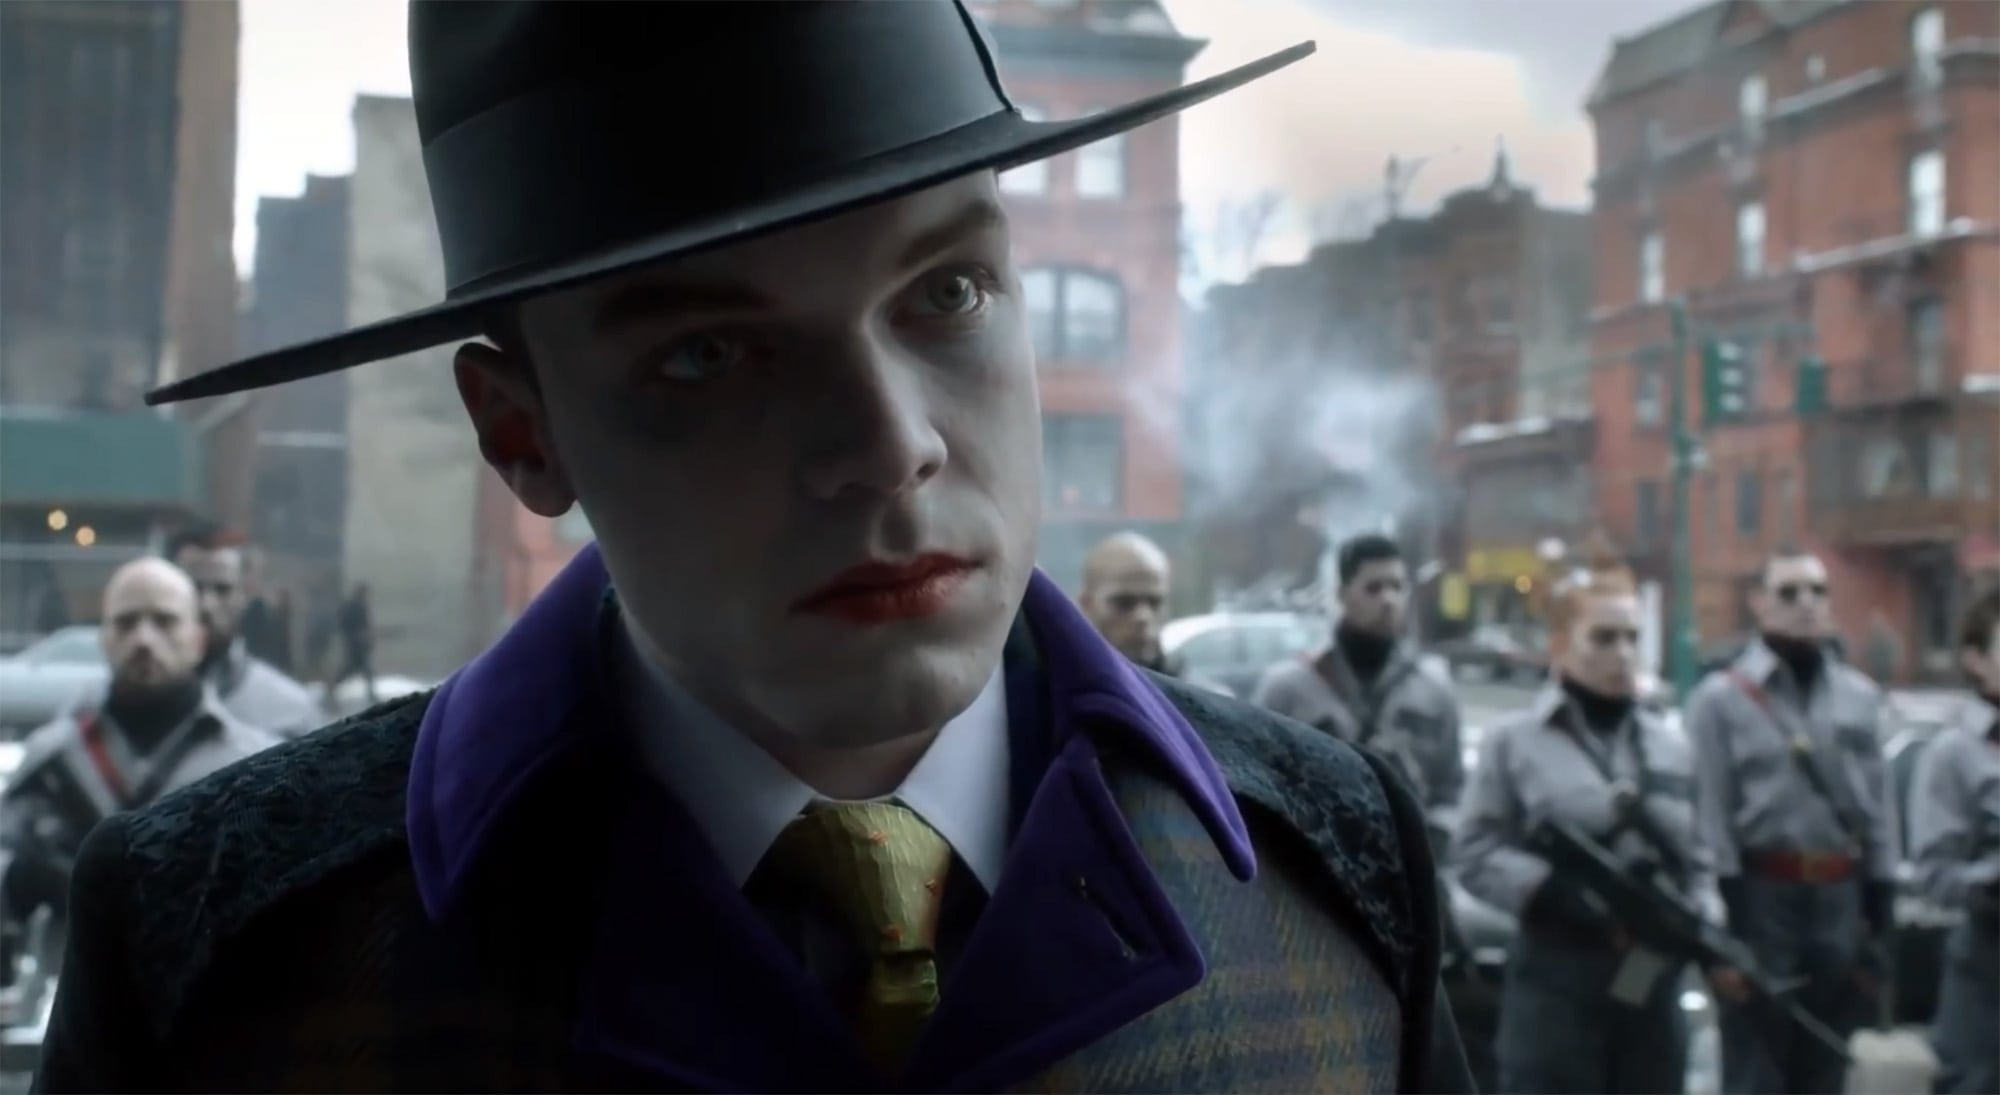 It would be fair to say that Fox's 'Gotham' has struggled to find its footing since its premiere back in 2014, however with most of the show's characters becoming more established, the showrunners promise greener pastures. But can the long-awaited arrival of The Joker save the show?